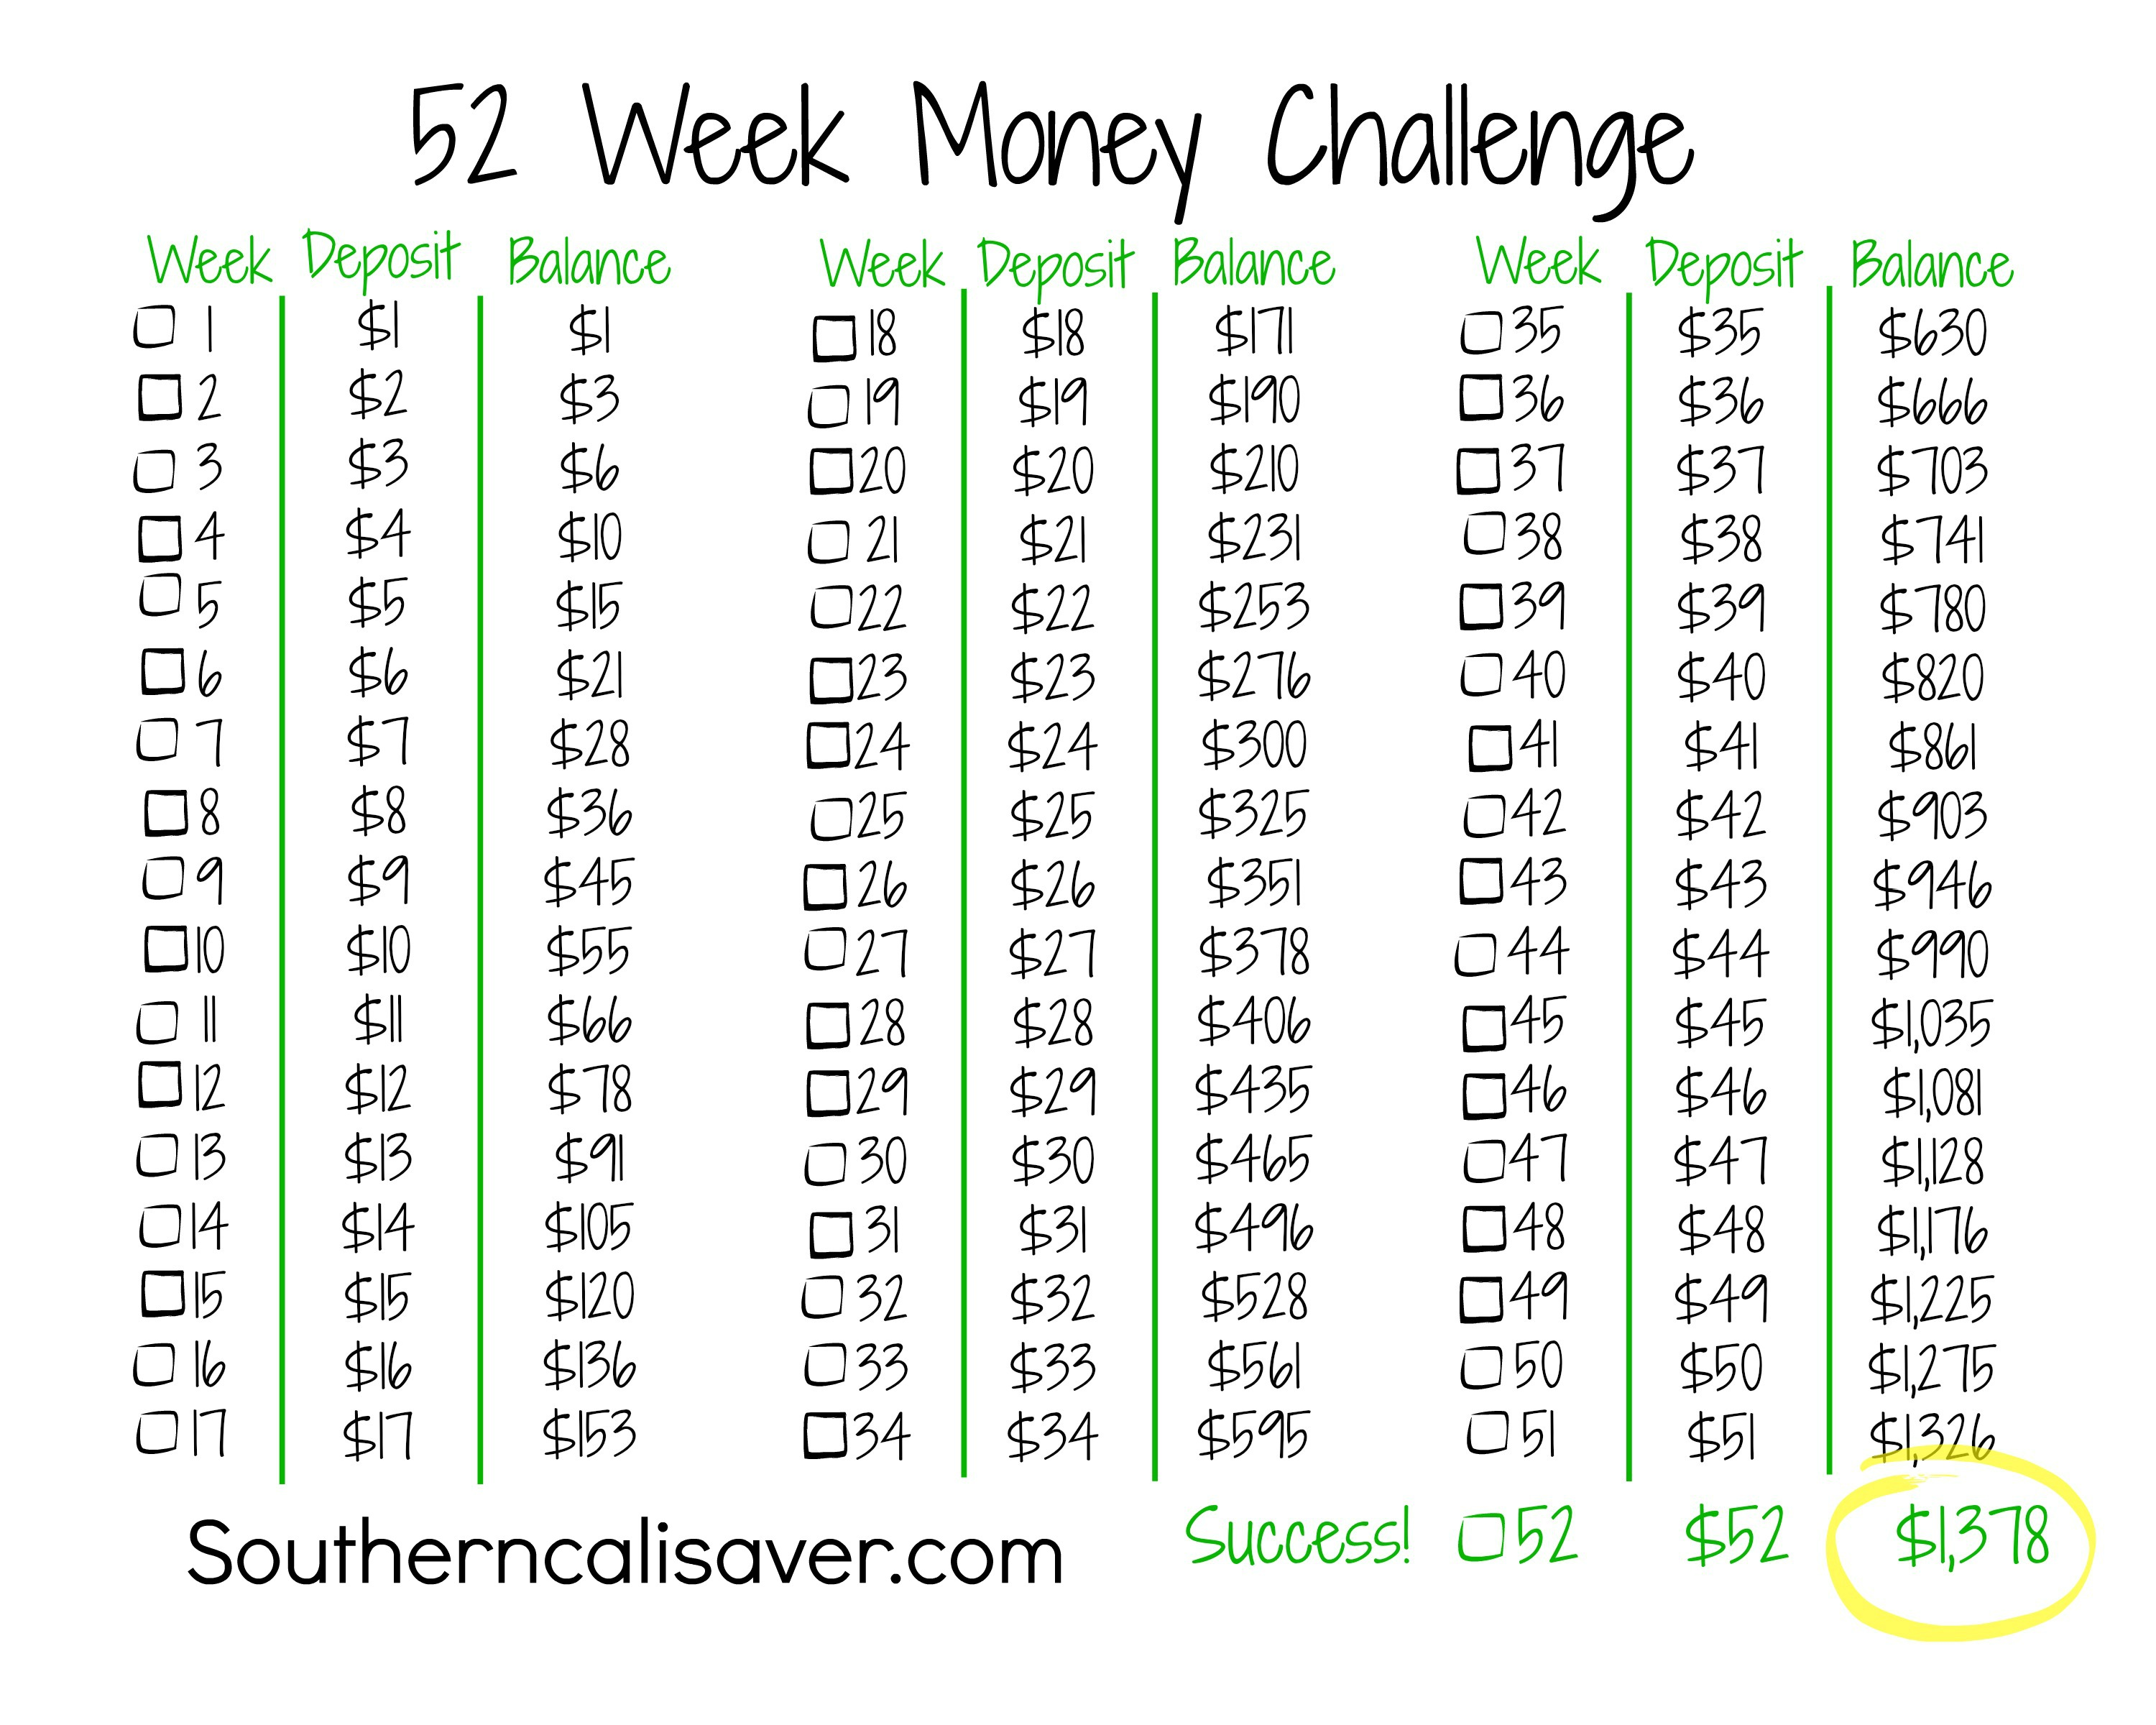 5 Different Ways To Save 1 400 Doing The 52 Week Savings